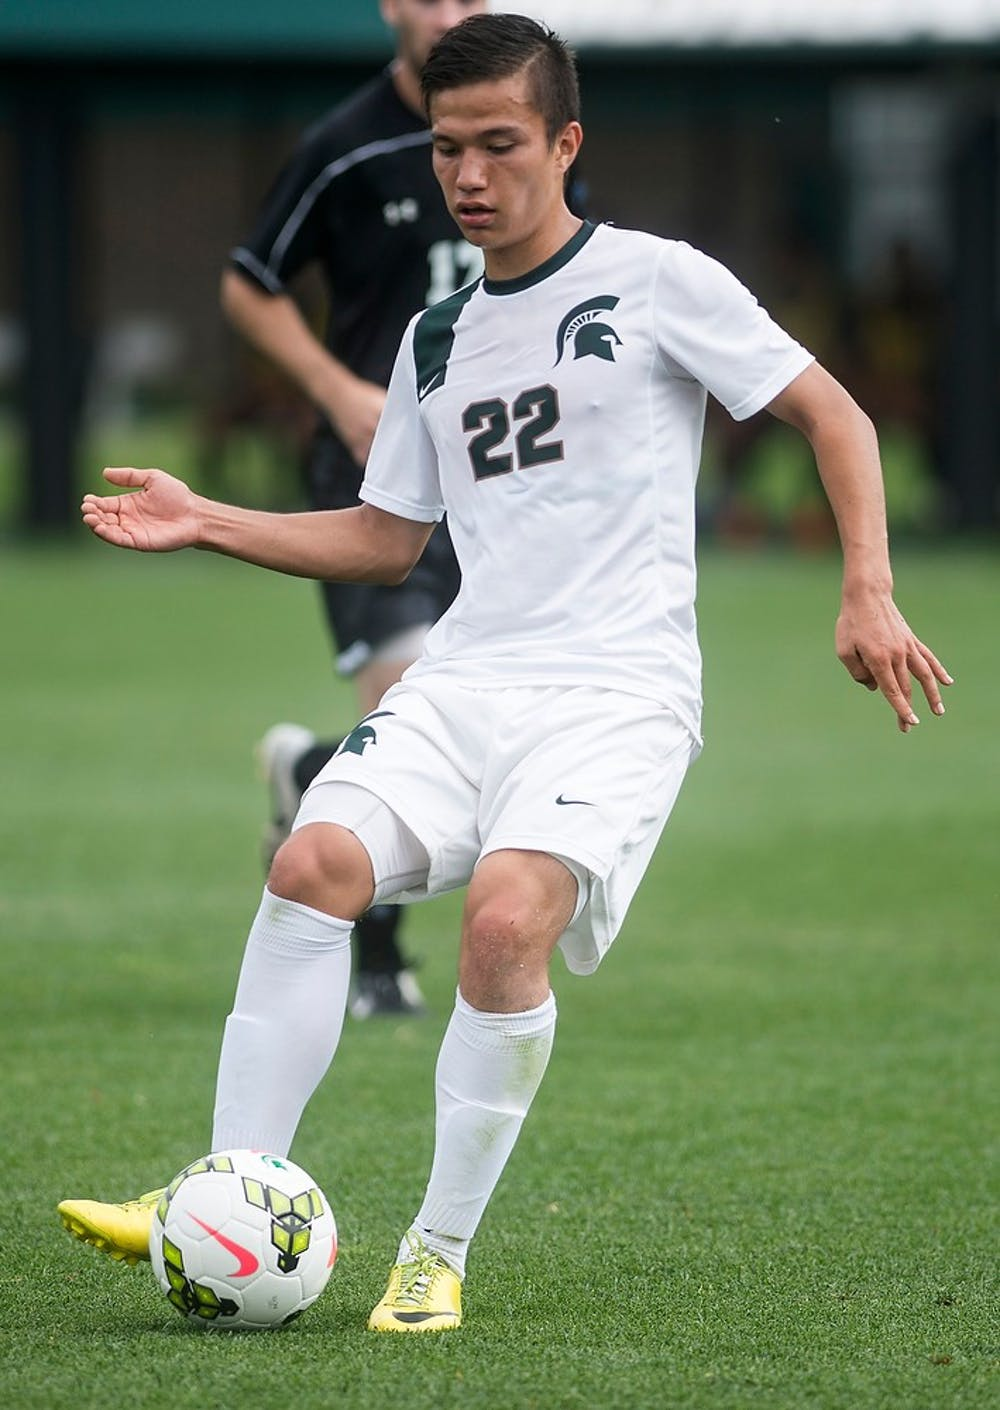 <p>Freshman midfielder Ken Krolicki kicks the ball Aug. 24, 2014, at DeMartin Soccer Stadium at Old College Field during a game against Stevens Institute of Technology. The Spartans defeated the Ducks, 4-0. Erin Hampton/The State News</p>